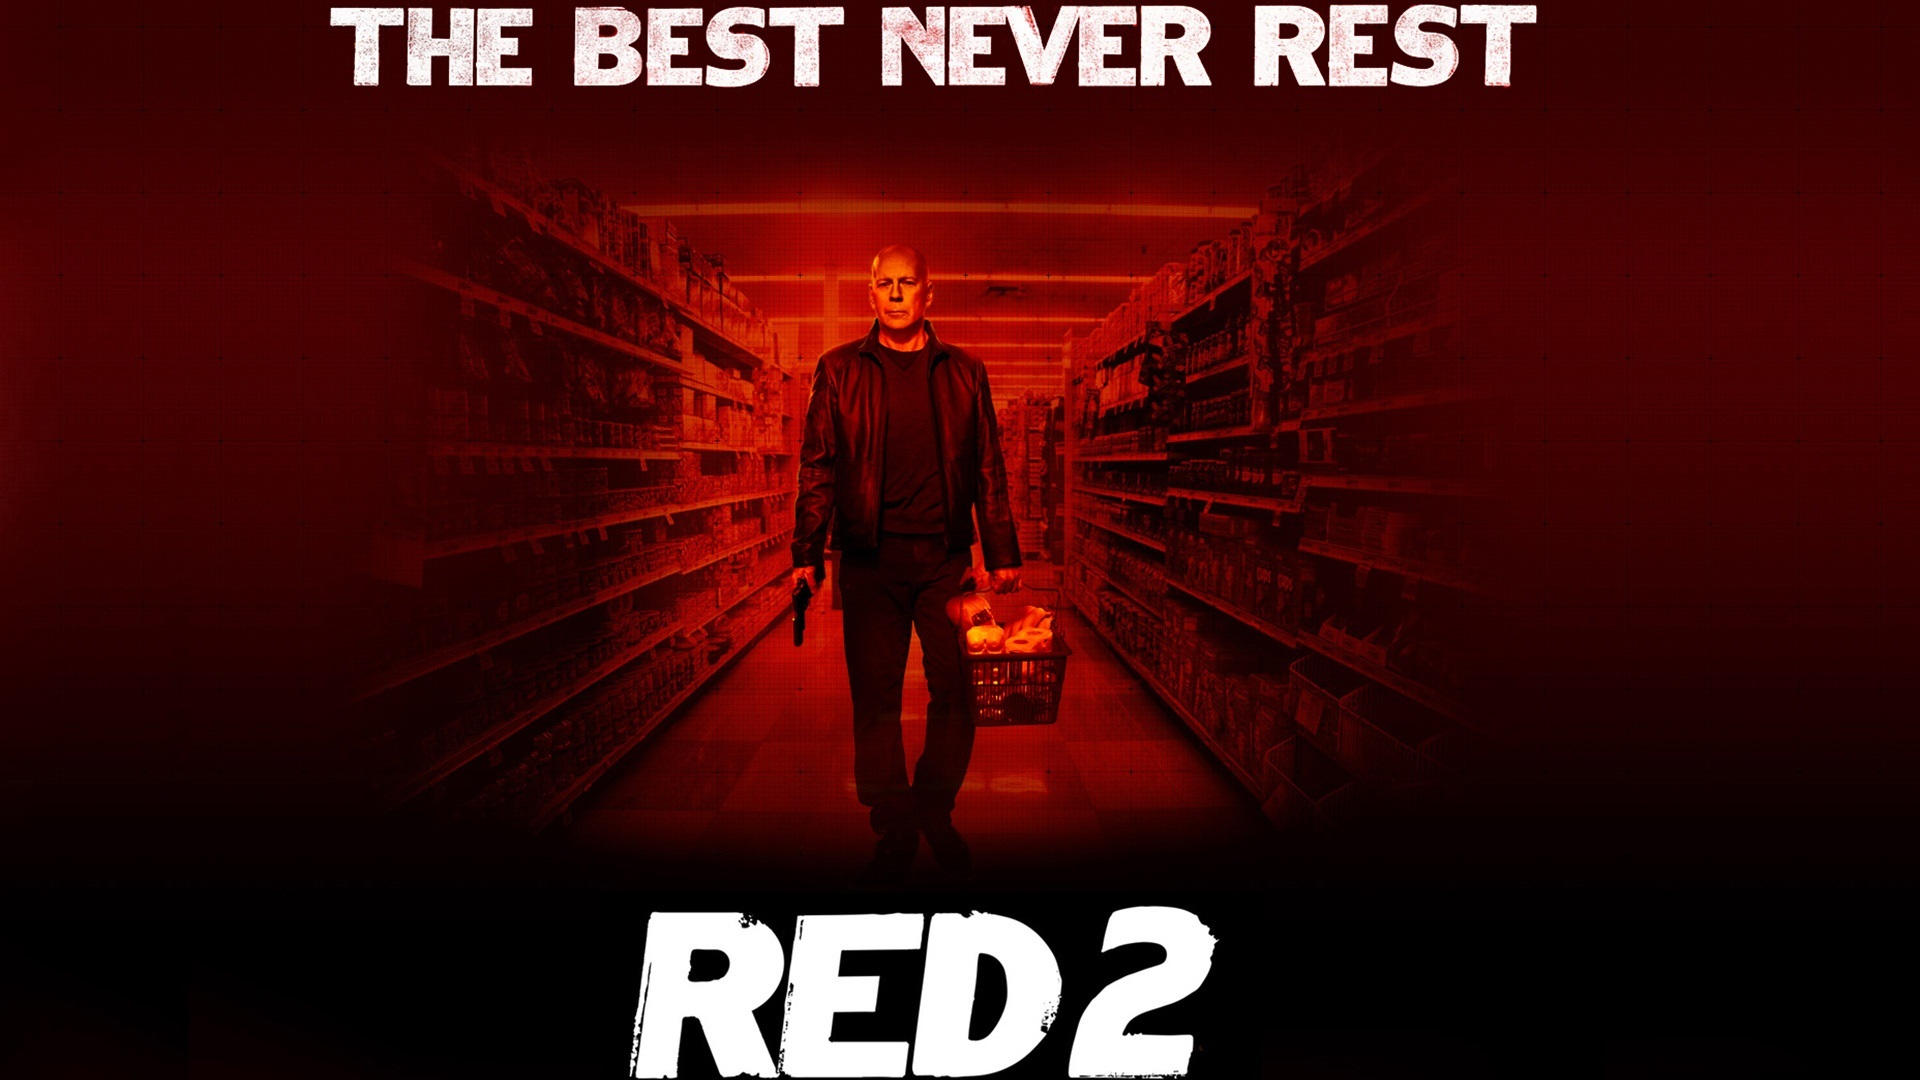 Red 2 wallpaper 1